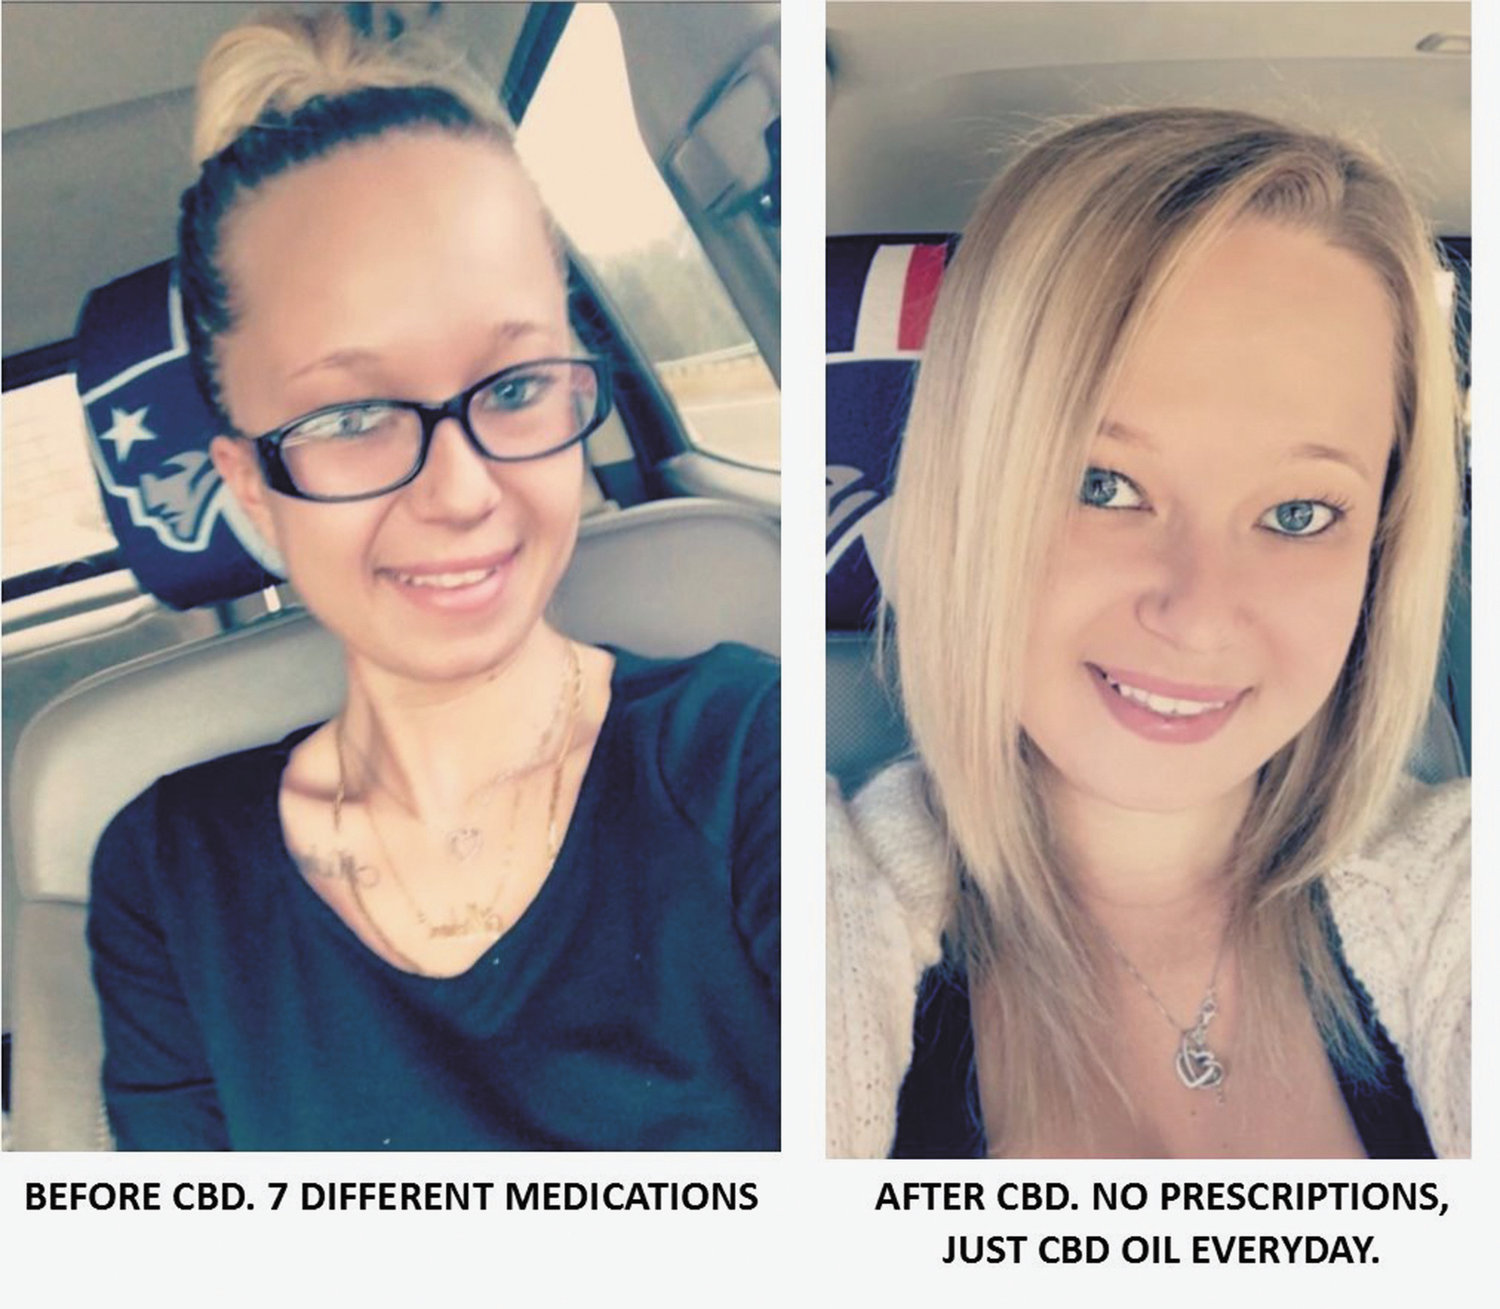 Meet Eva Lanoue, seen here is a shocking before & after photo.  The left photo is of Eva after trying seven different medications.  The right is one taken after she discovered CBD-infused products.  The store is now selling their life-changing products online and over the phone.